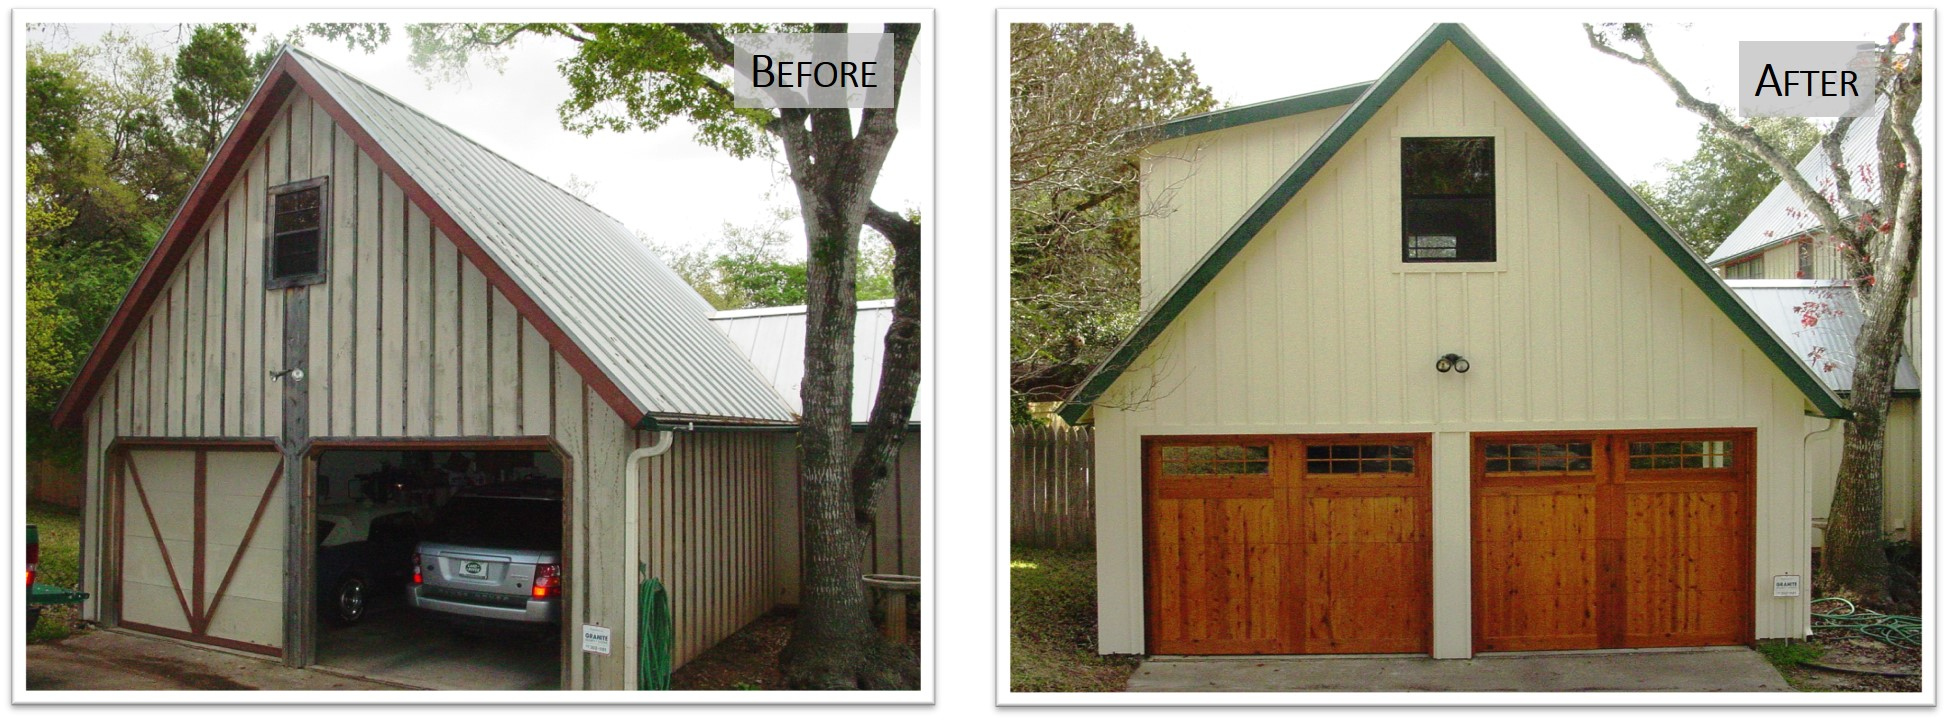 4802 WB, Garage Front, Before and After, Bear Creek Homes.jpg